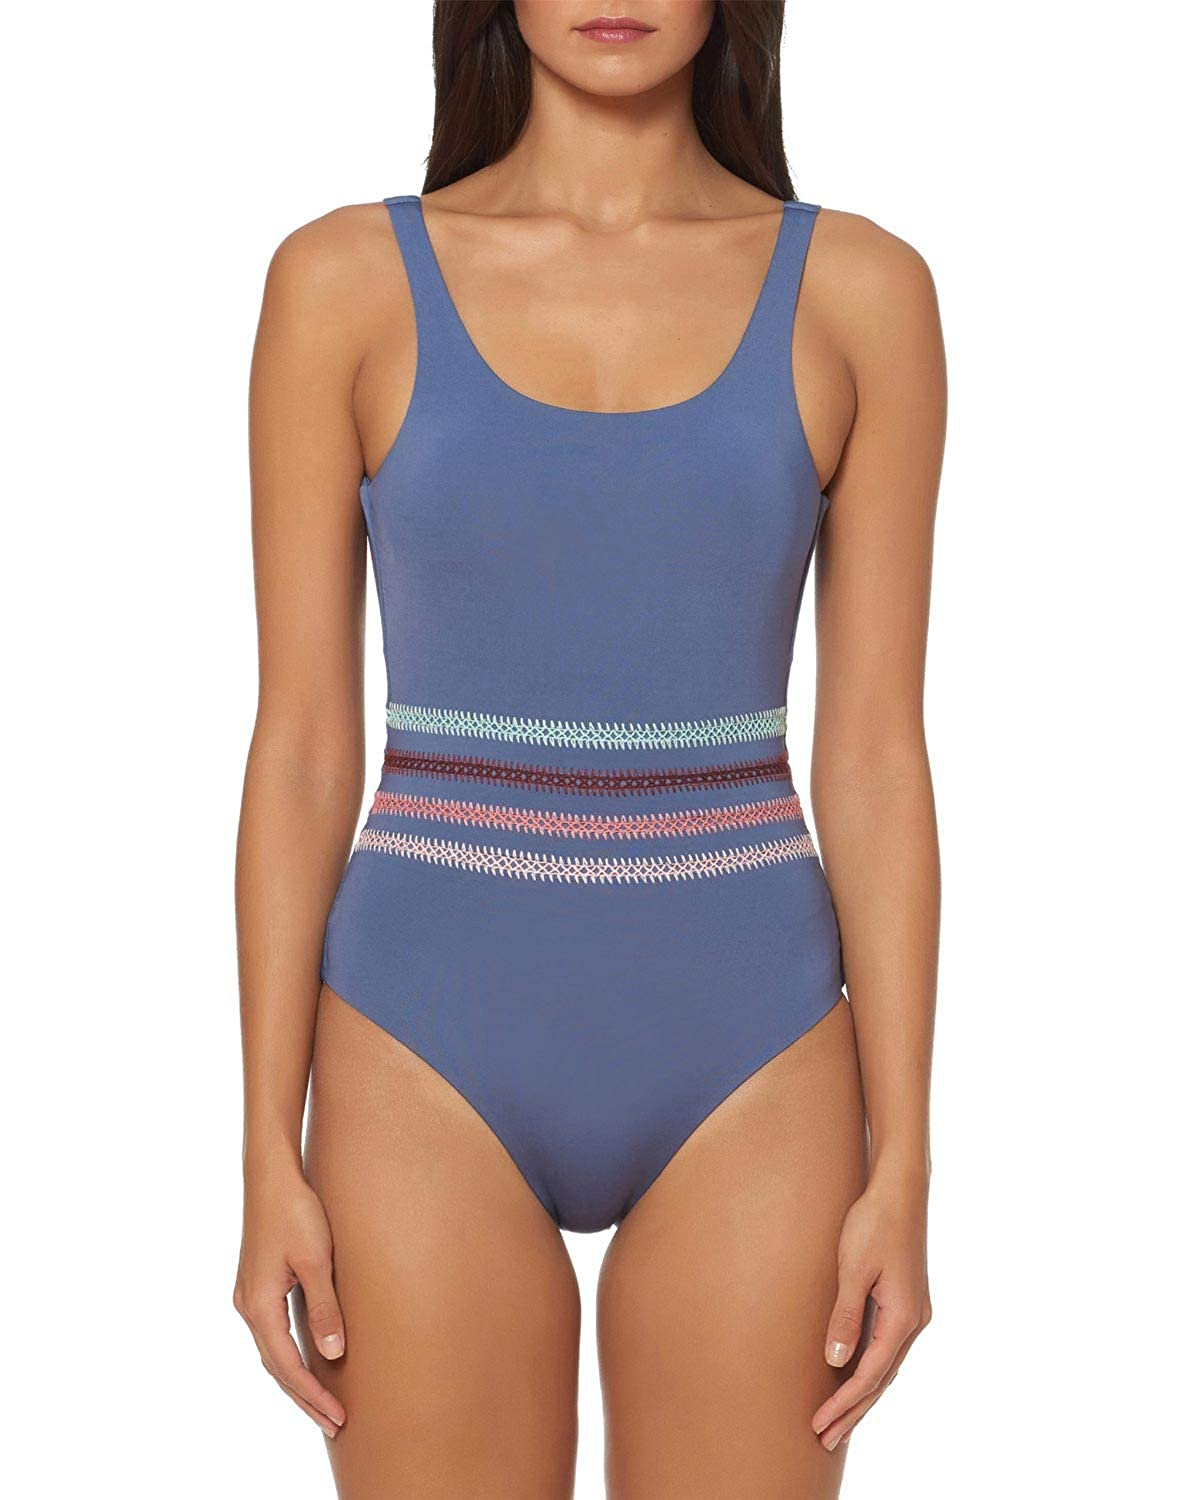 Dolce Vita Womens Kokomo Embroidered Over The Shoulder One Piece Swimsuit